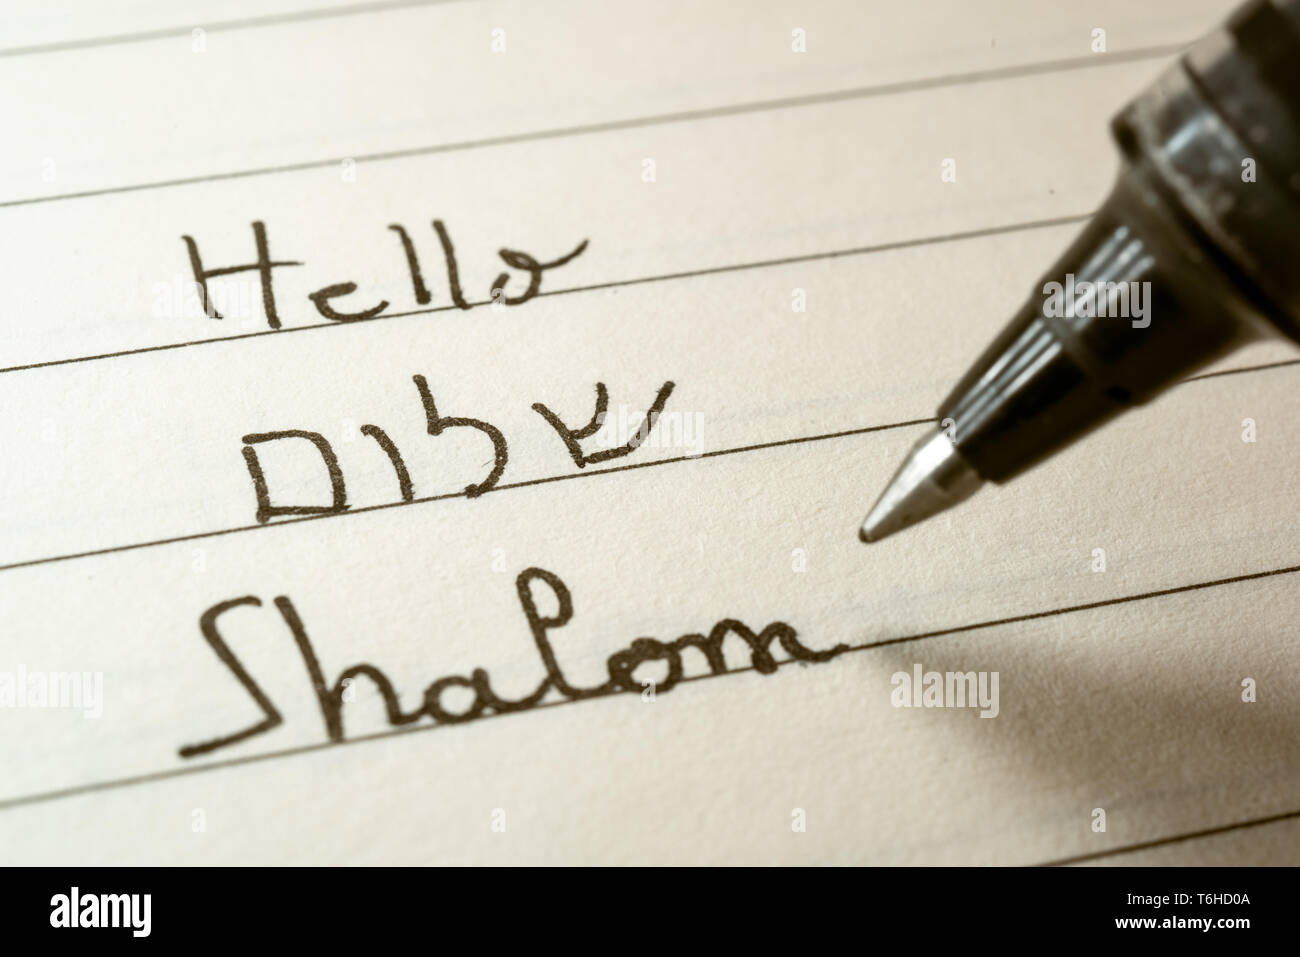 Beginner Hebrew language learner writing Hello Shalom word in Hebrew alphabet on a notebook close-up shot - Stock Image